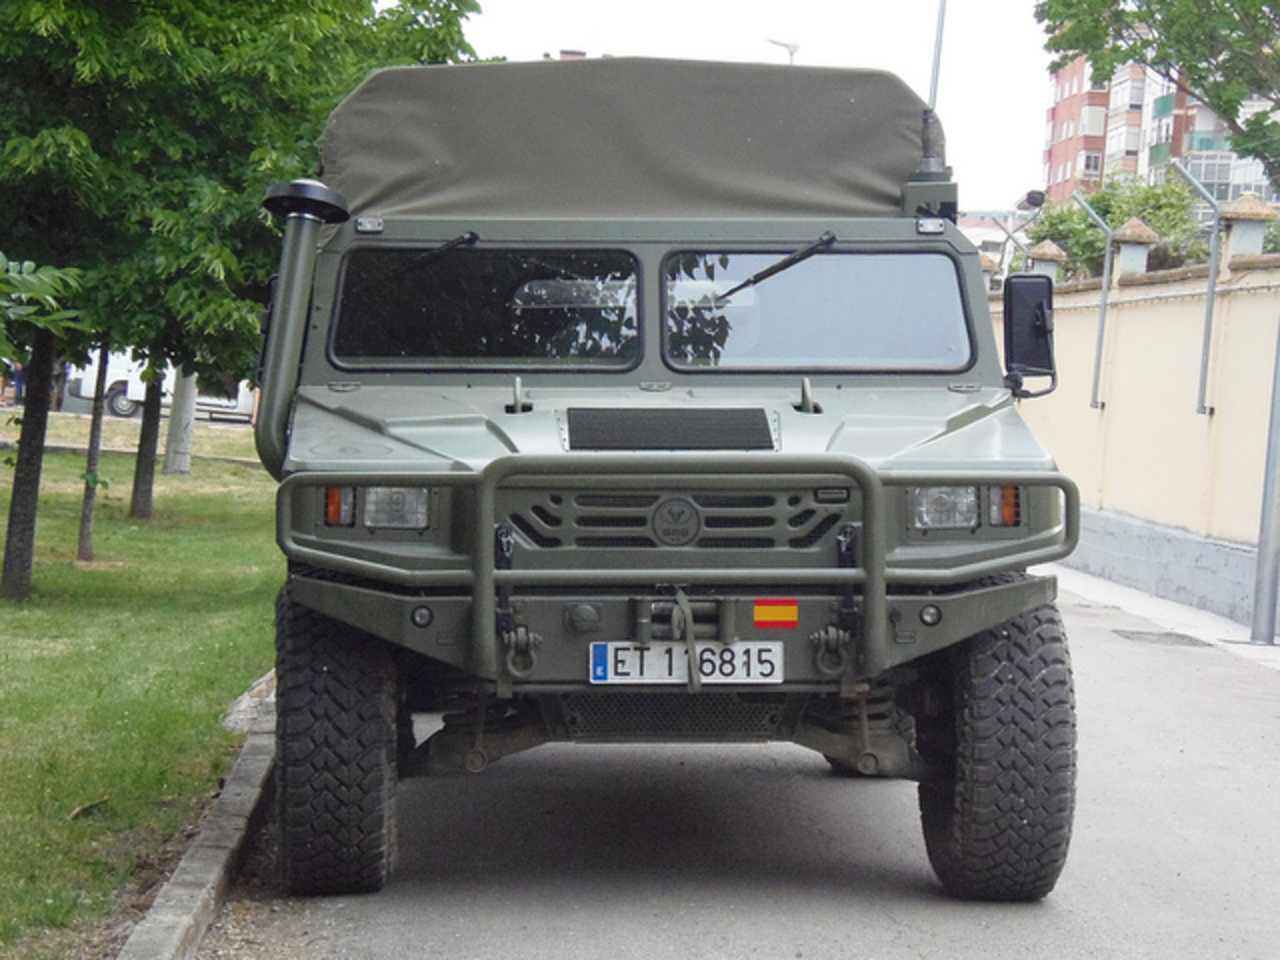 URO VAMTAC Rebeco 4x4 version Transporte Personal | Flickr - Photo ...